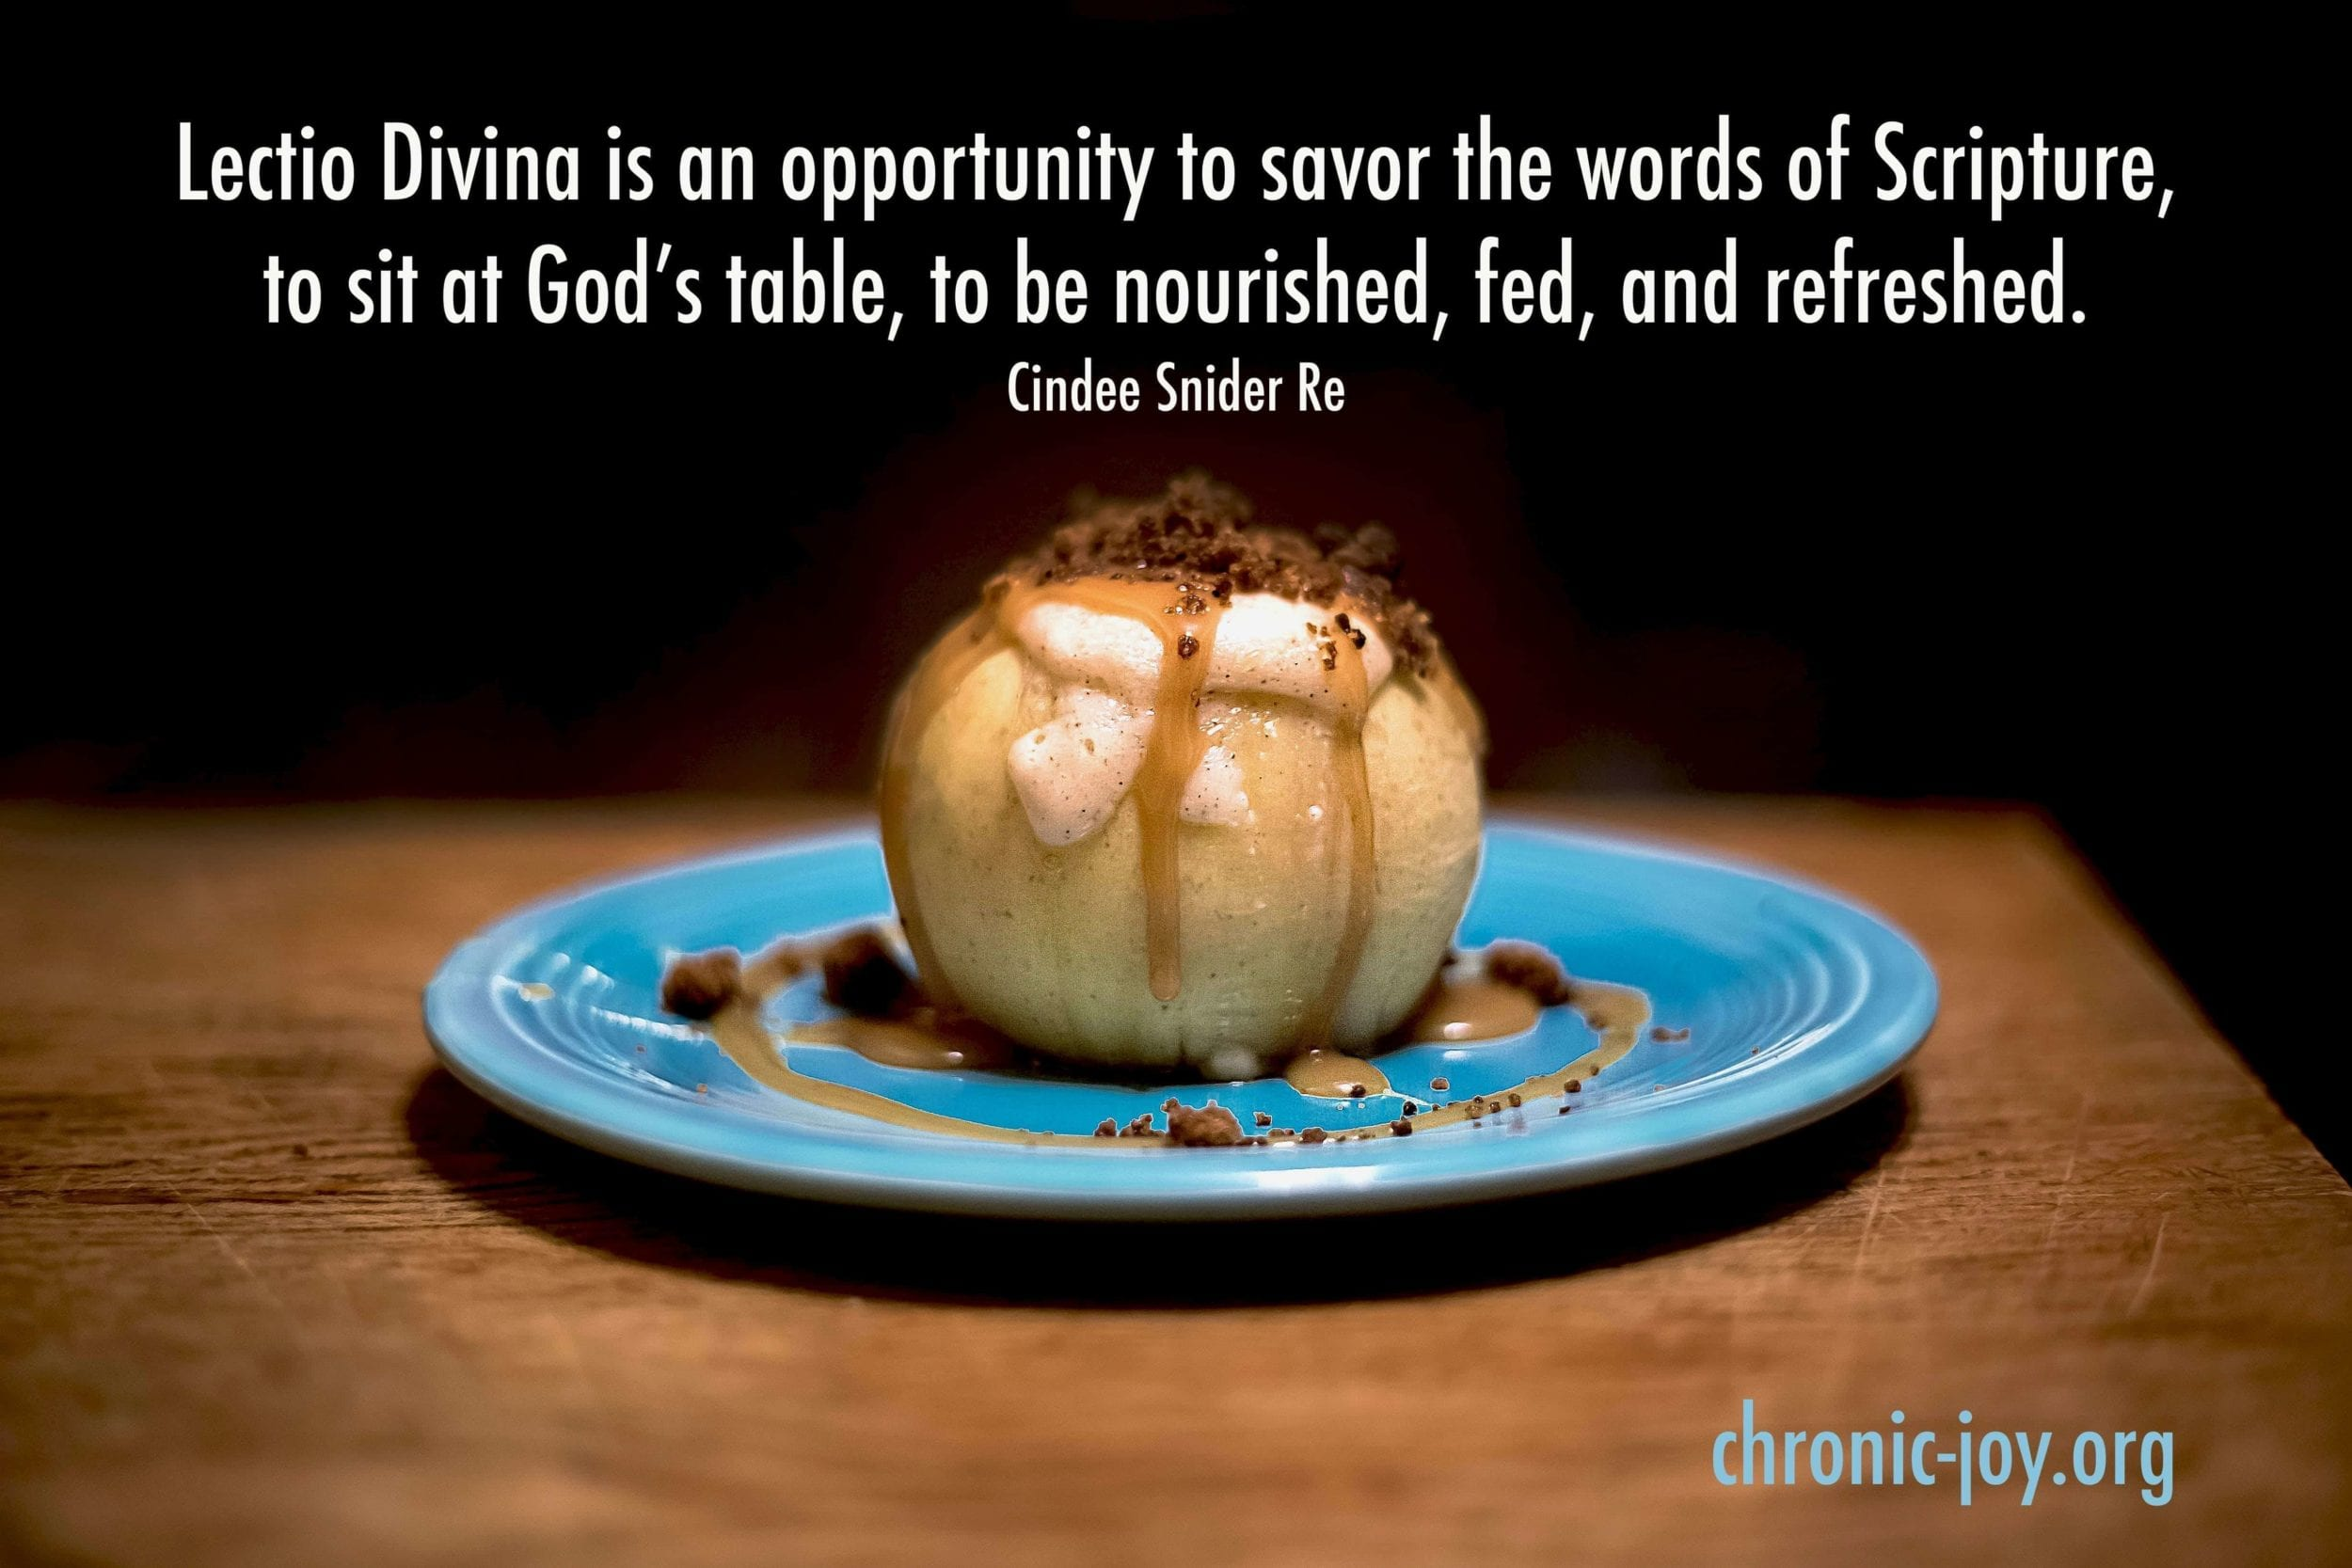 Lectio Divina, Holy Reading, baked apple on blue plate